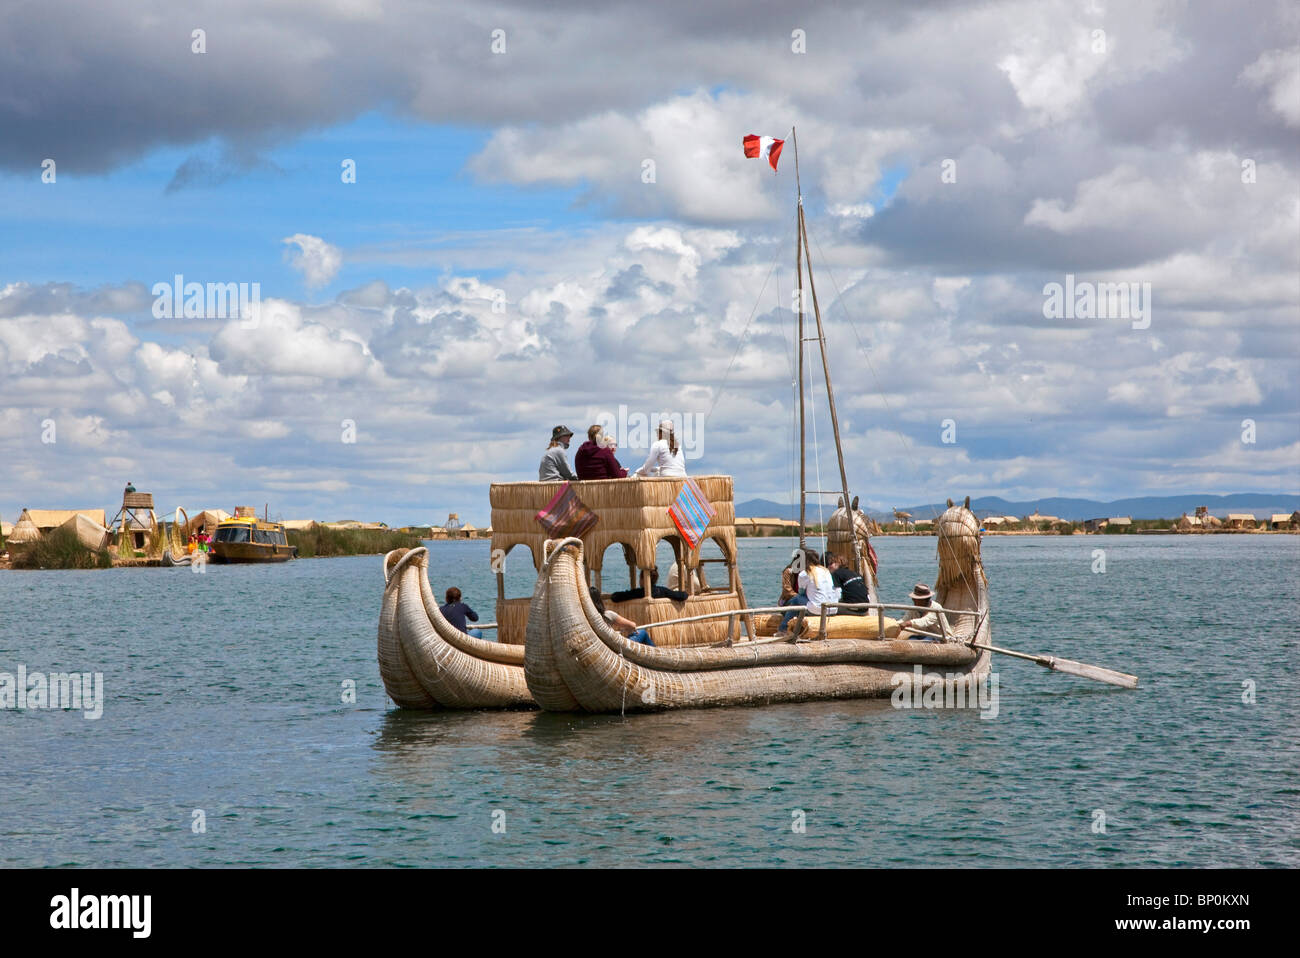 Peru, A large reed boat is rowed down the main channel between the unique floating islands of Uros on Lake Titicaca. - Stock Image